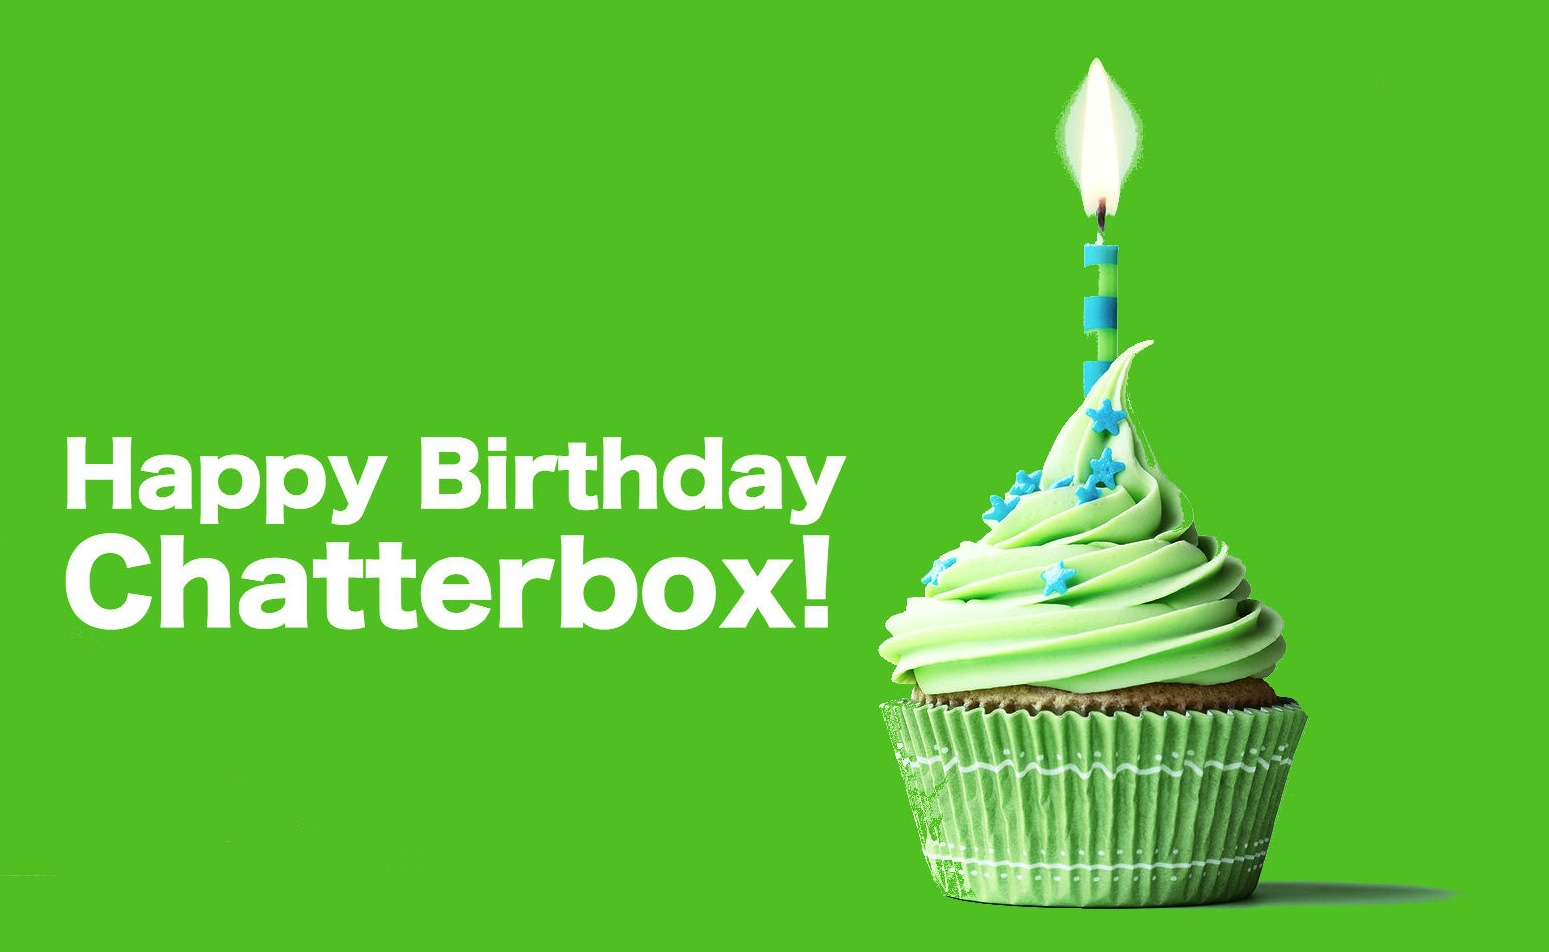 Chatterbox First Birthday WeChat 2